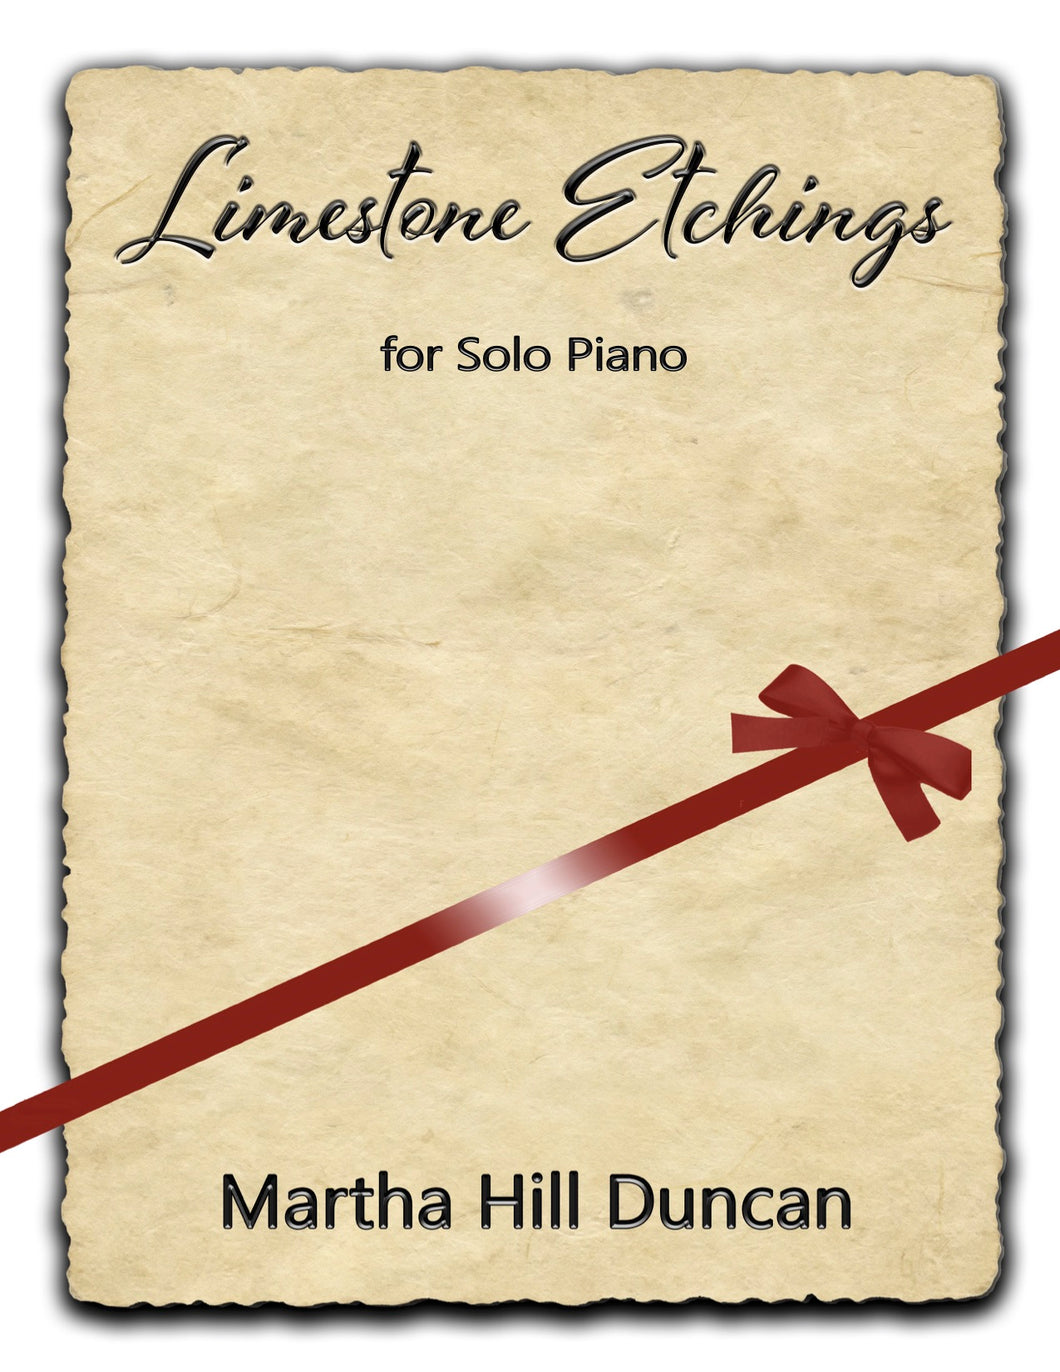 THE WAR MEMORIAL - Piano Solo from LIMESTONE ETCHINGS